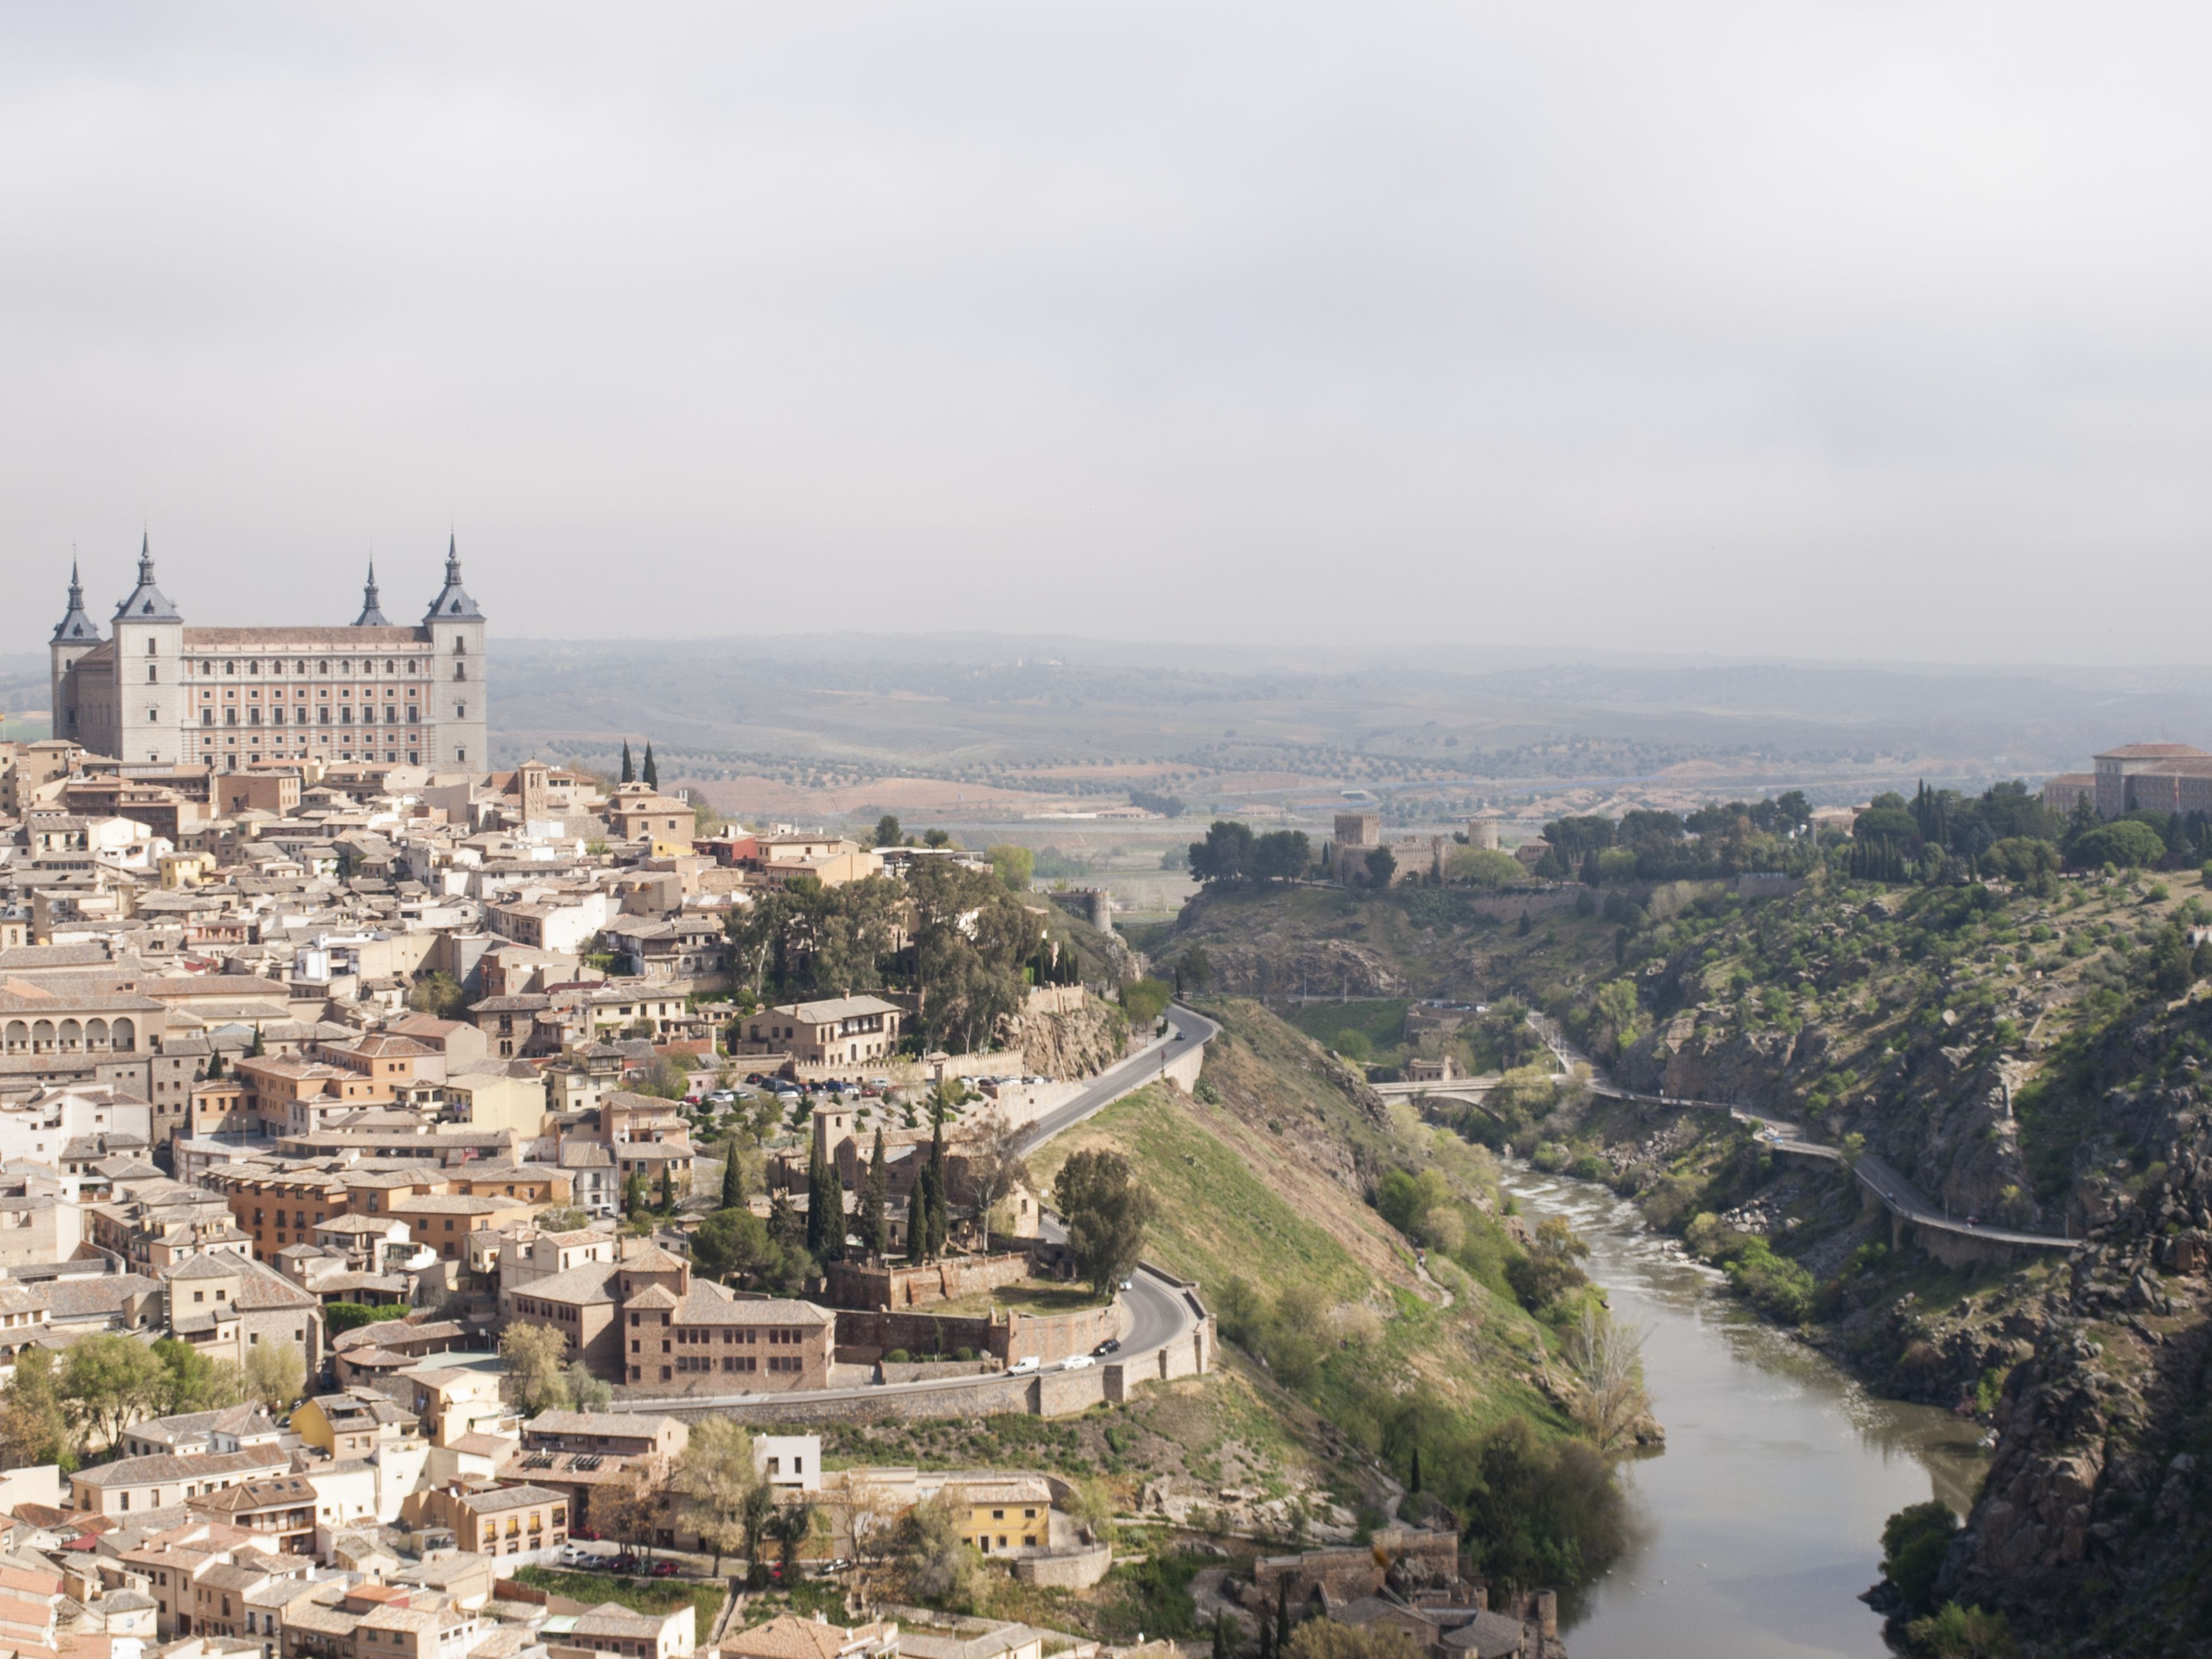 Old Town of Toledo and the Tagus River, Castilla-La Mancha, Spain